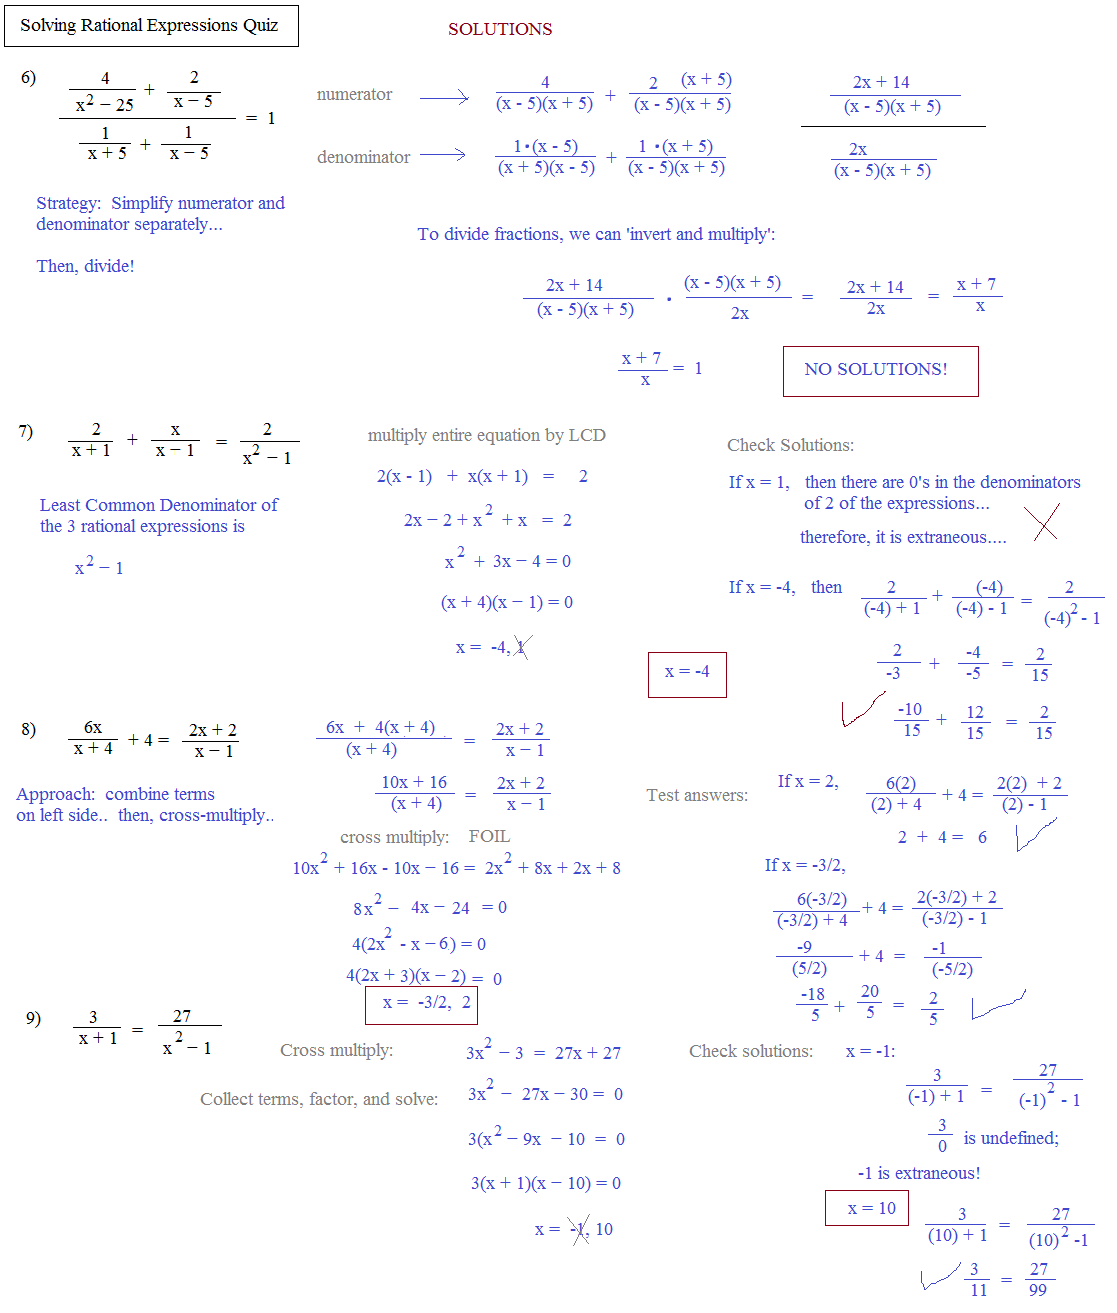 worksheet Rational Expressions Worksheet solving rational equations worksheet rupsucks printables worksheets algebra 1 expressions worksheets